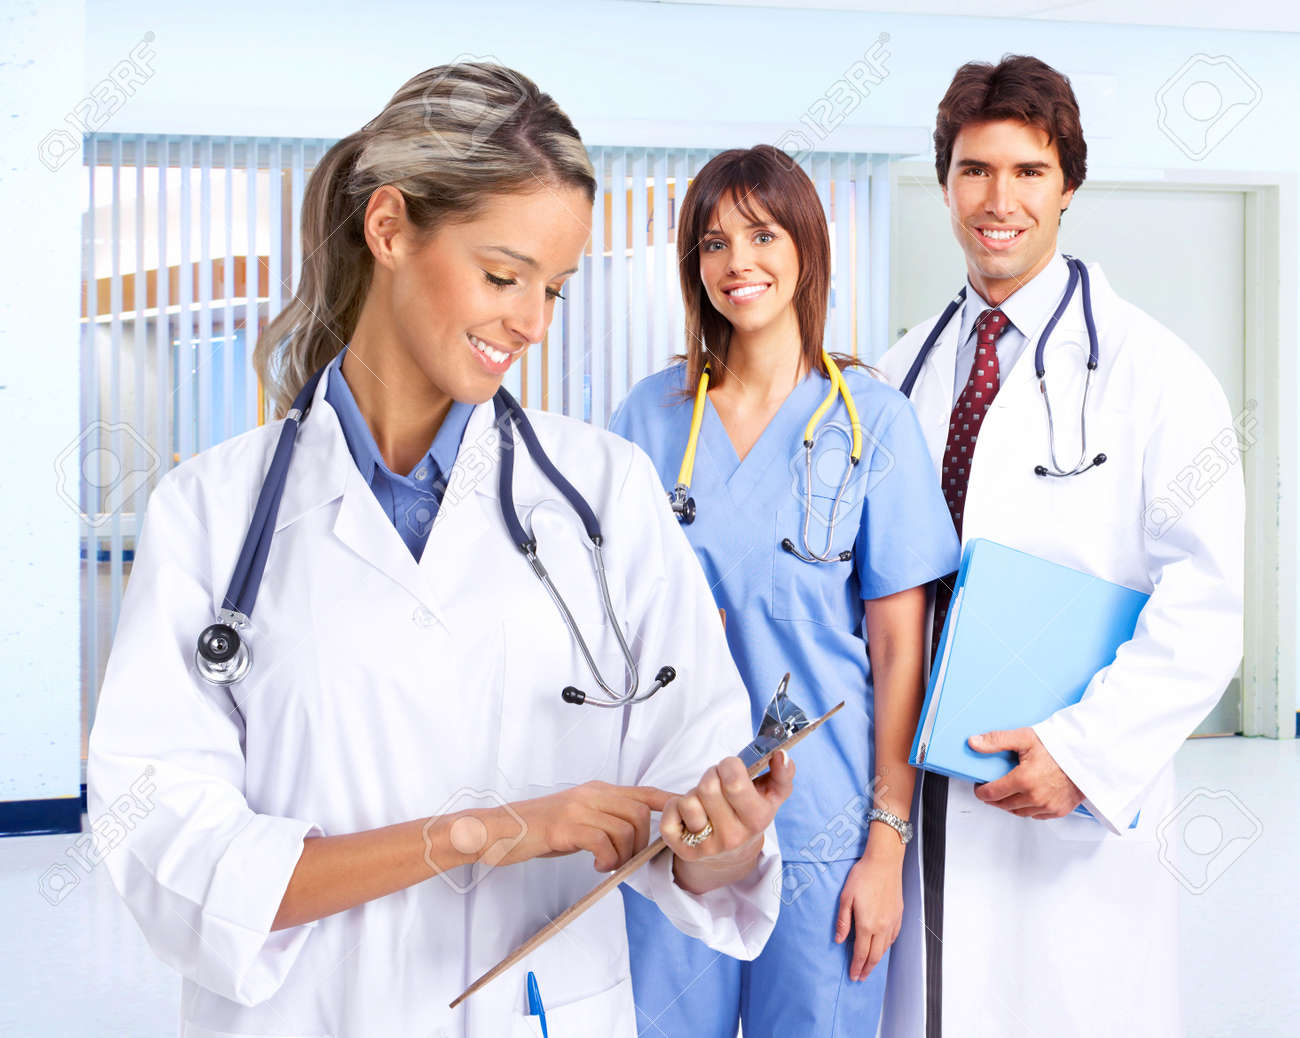 Smiling medical people with stethoscopes. Doctors and nurses Stock Photo - 4823396